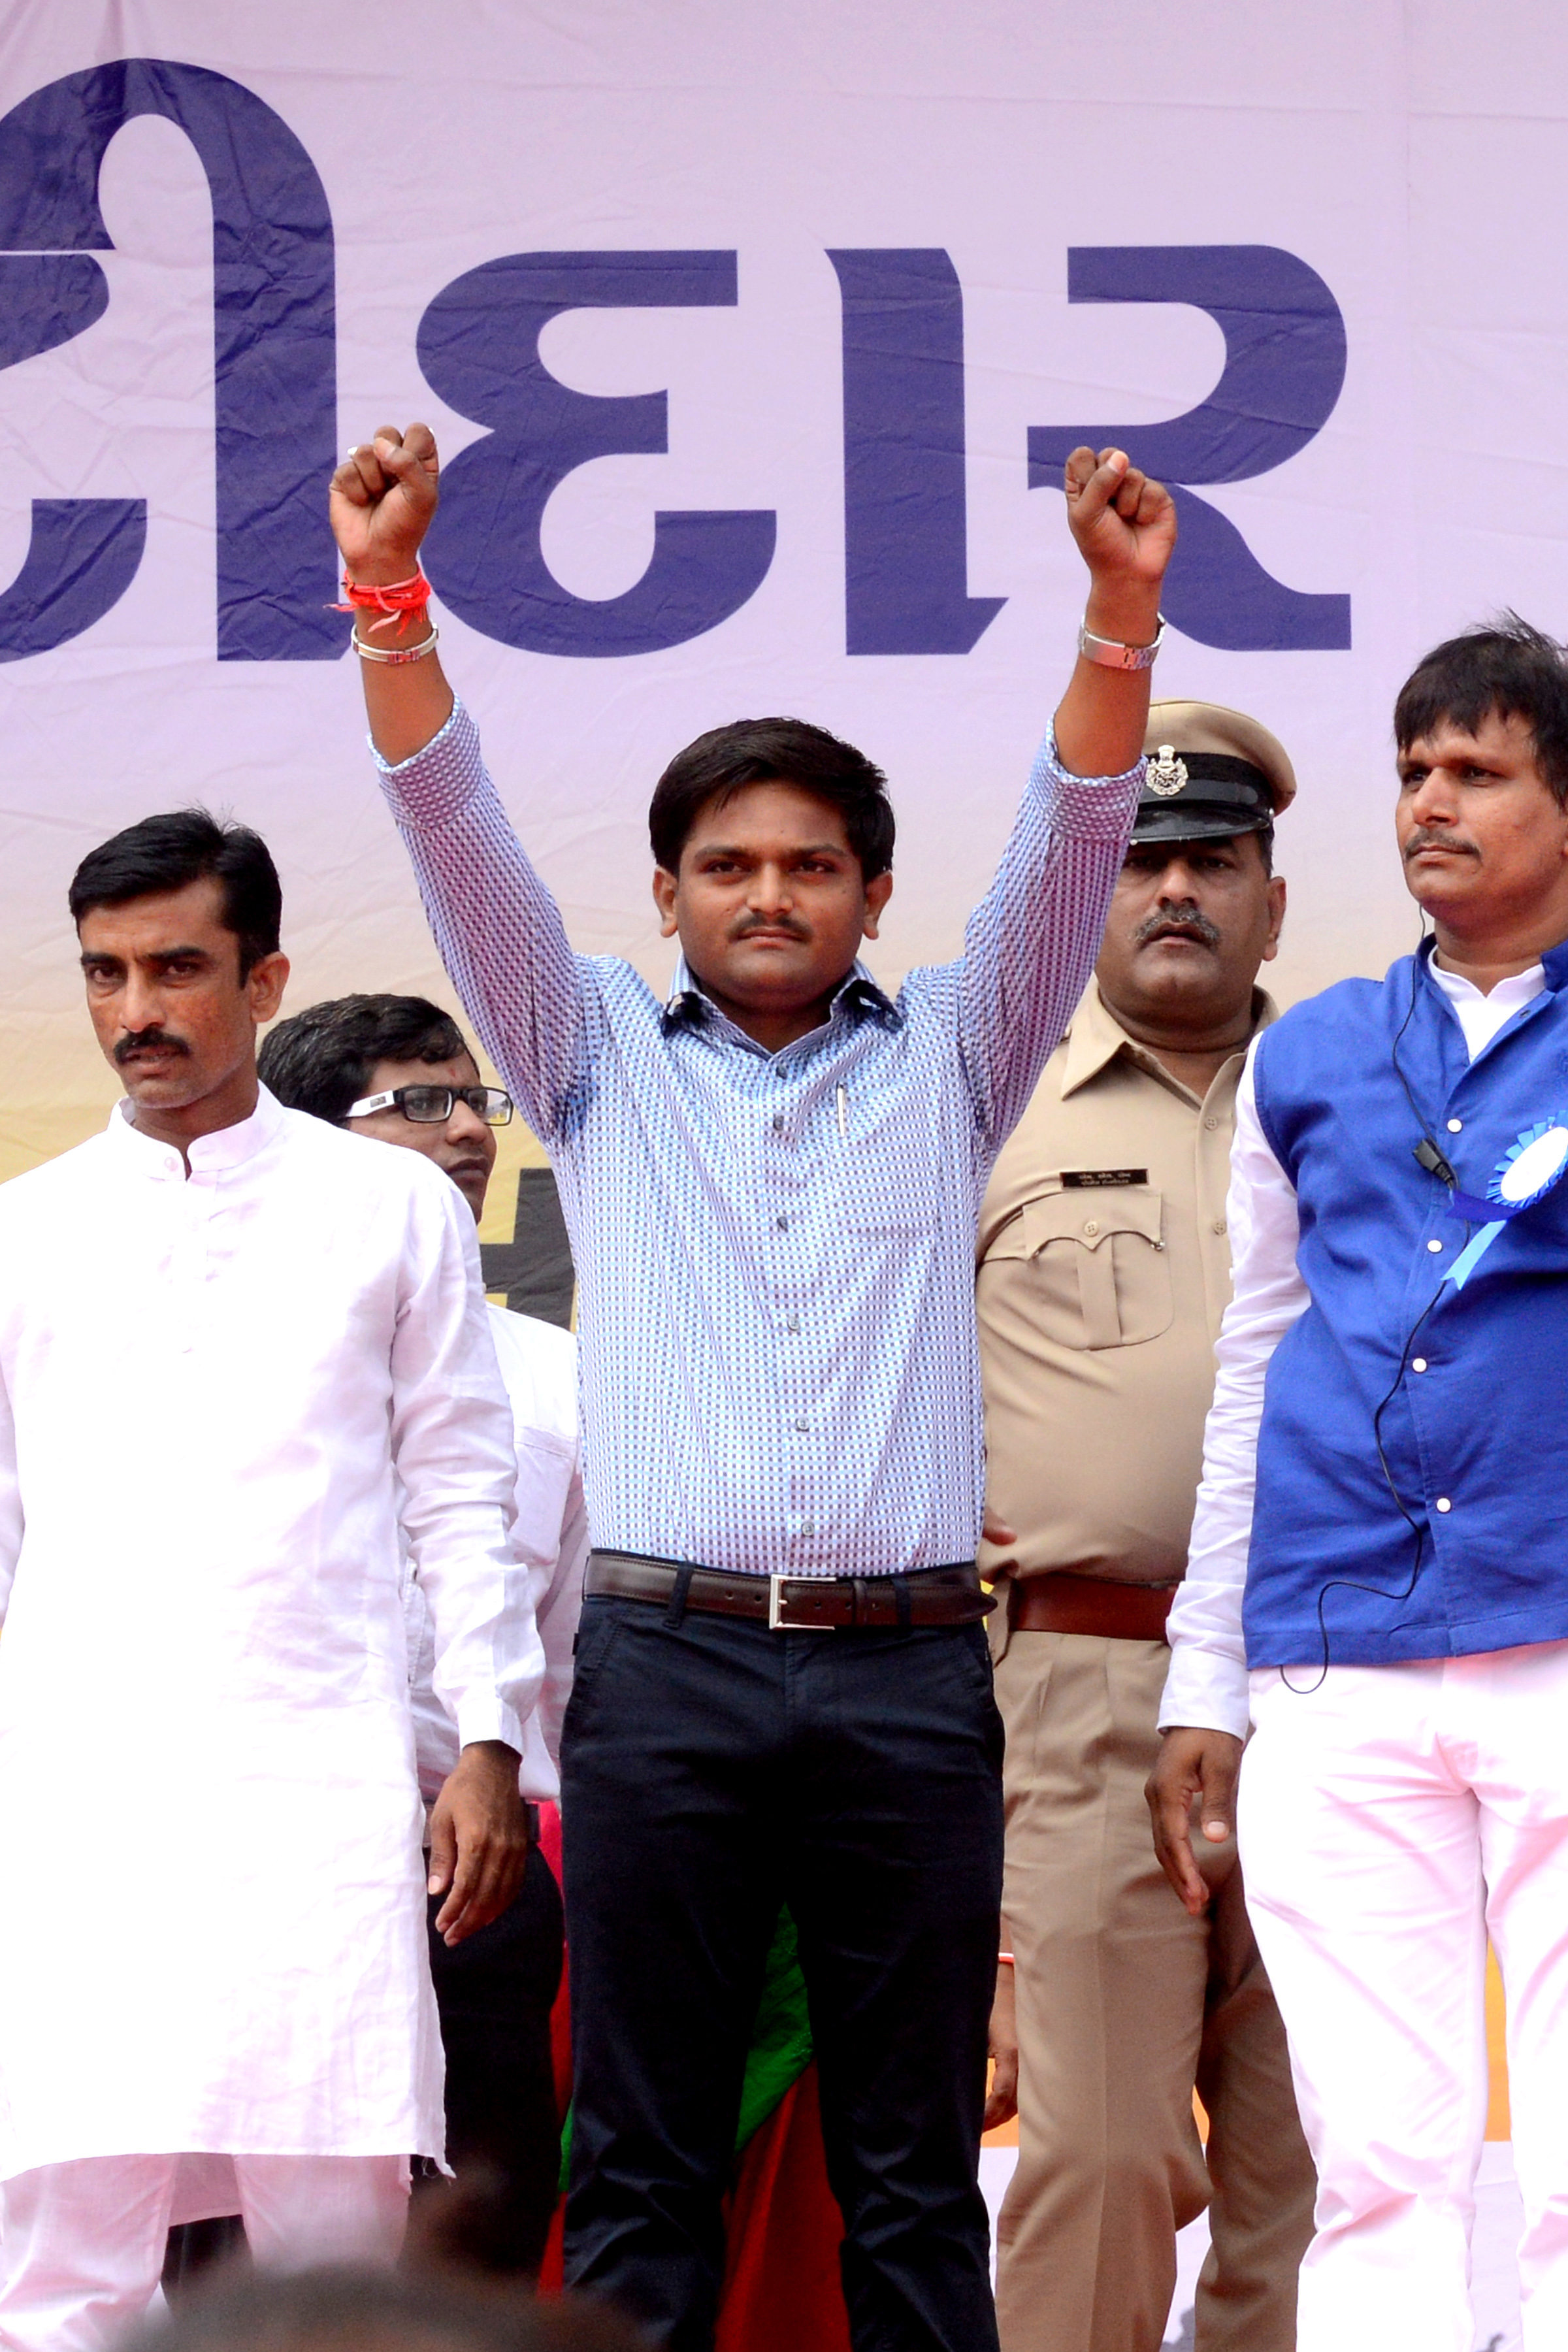 Hardik Patel, center, and others at the Maha Kranti rally at GMDC ground in Ahmedabad on Aug. 25, 2015. The Maha Kranti rally comes after a monthlong agitation by the Patel community for their demand of reservation